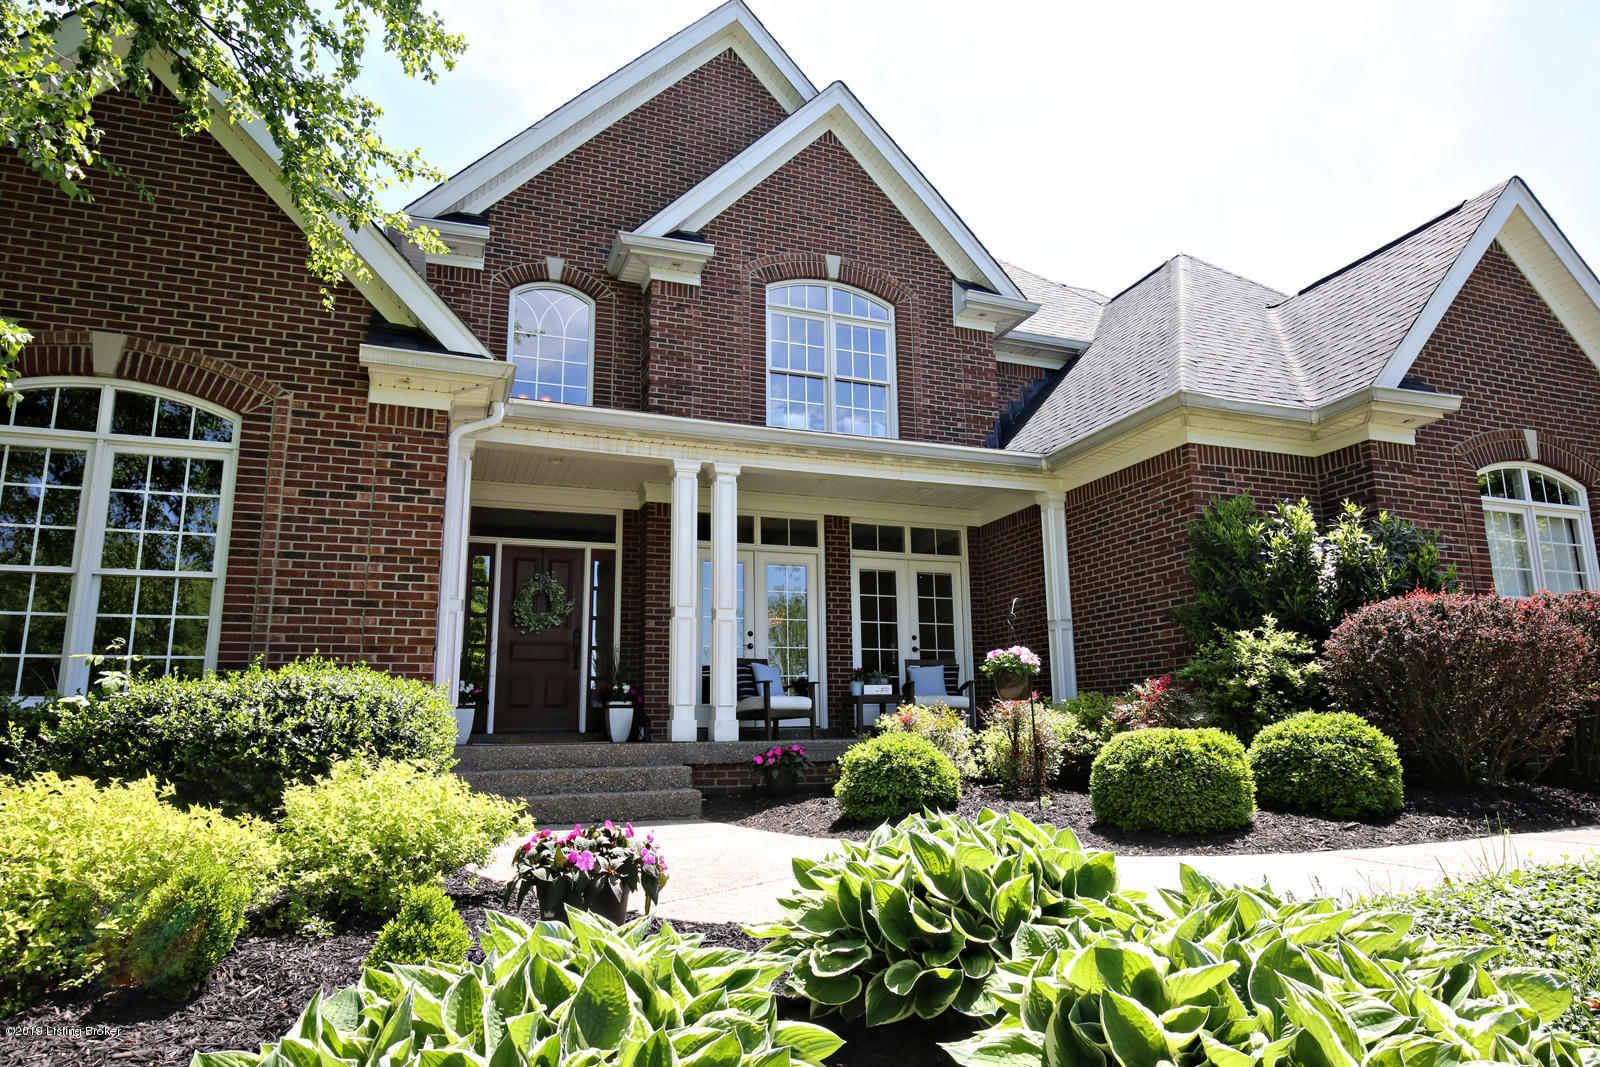 13300 Longwood Ln, Goshen, Kentucky 40026, 5 Bedrooms Bedrooms, 16 Rooms Rooms,6 BathroomsBathrooms,Residential,For Sale,Longwood,1531520